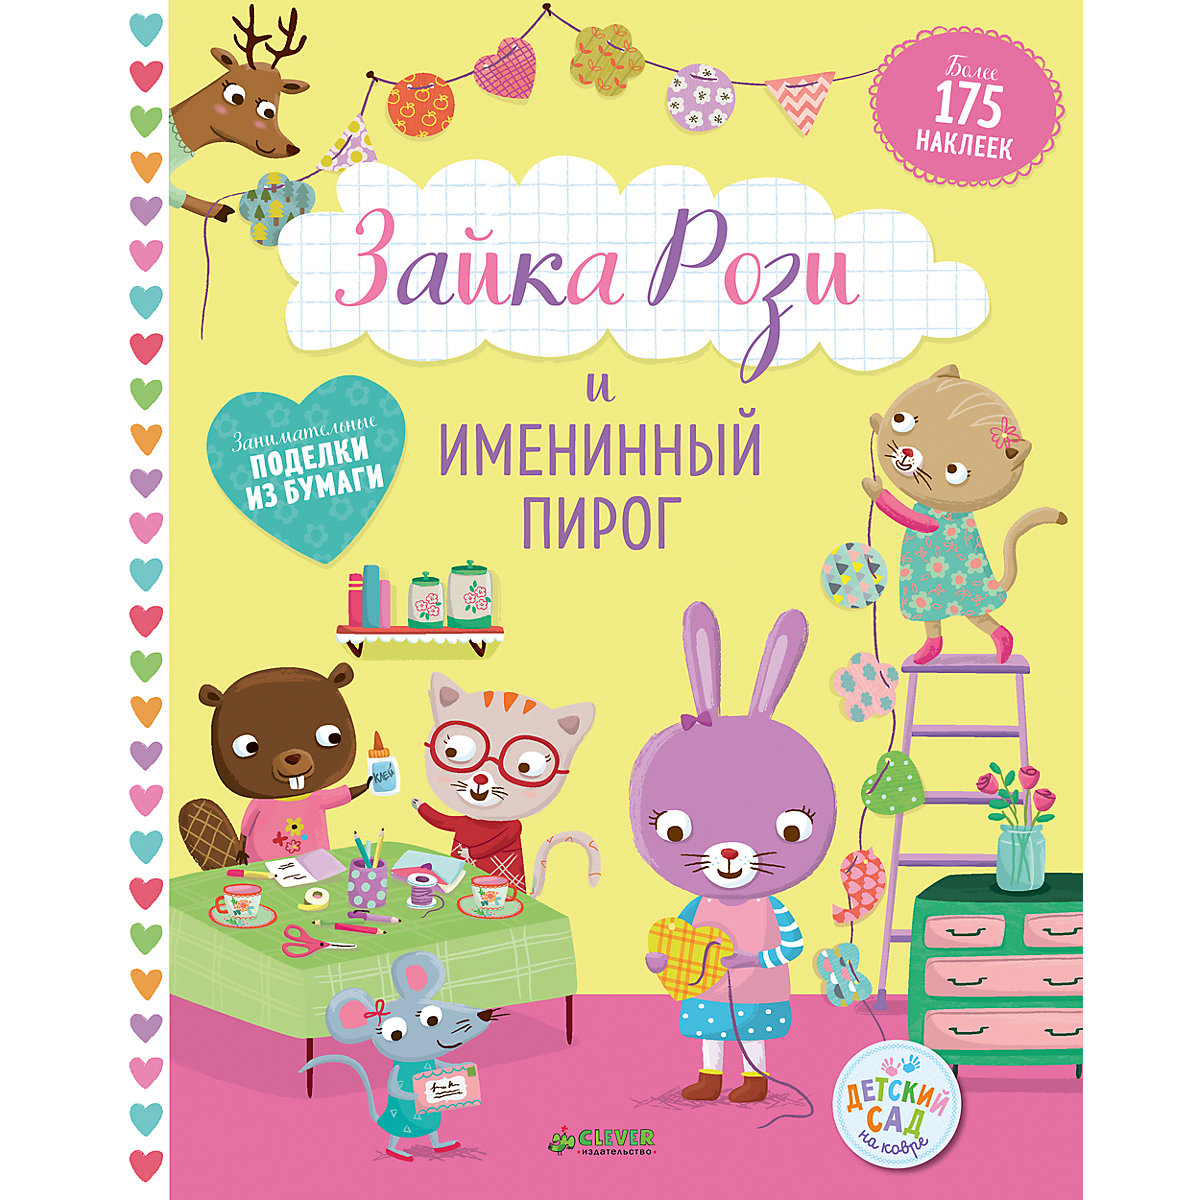 Books CLEVER 7940268 Children Education Encyclopedia Alphabet Dictionary Book For Baby MTpromo